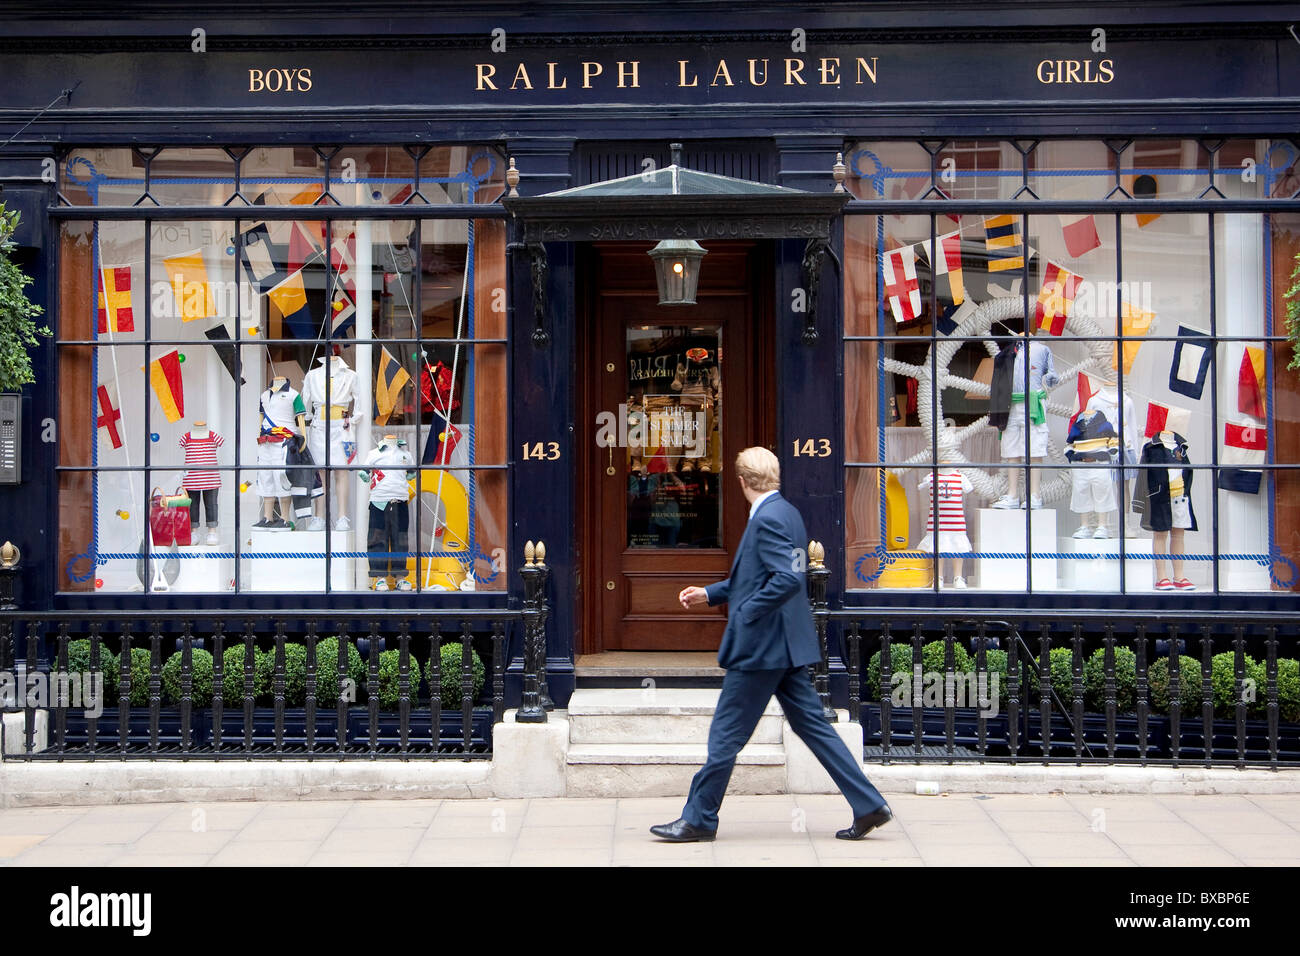 Fashion store for children's clothing, by Ralph Lauren in London, England, United Kingdom, Europe - Stock Image